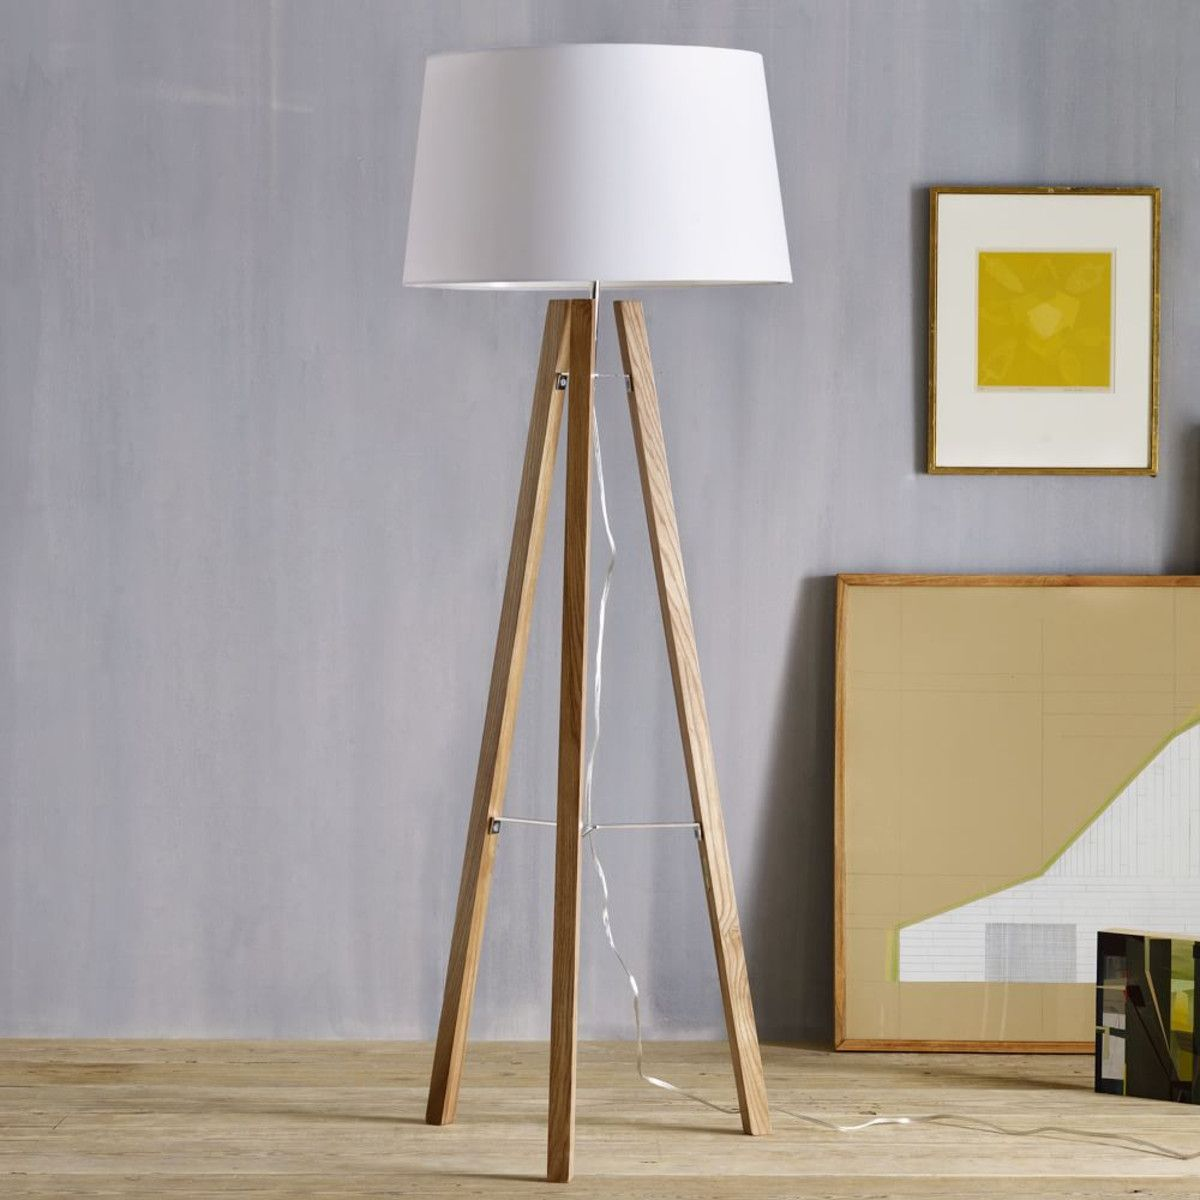 Furnitures tripod wood floor lamp have three wood legs with white furnitures tripod wood floor lamp have three wood legs with white lamp top above wood mozeypictures Gallery